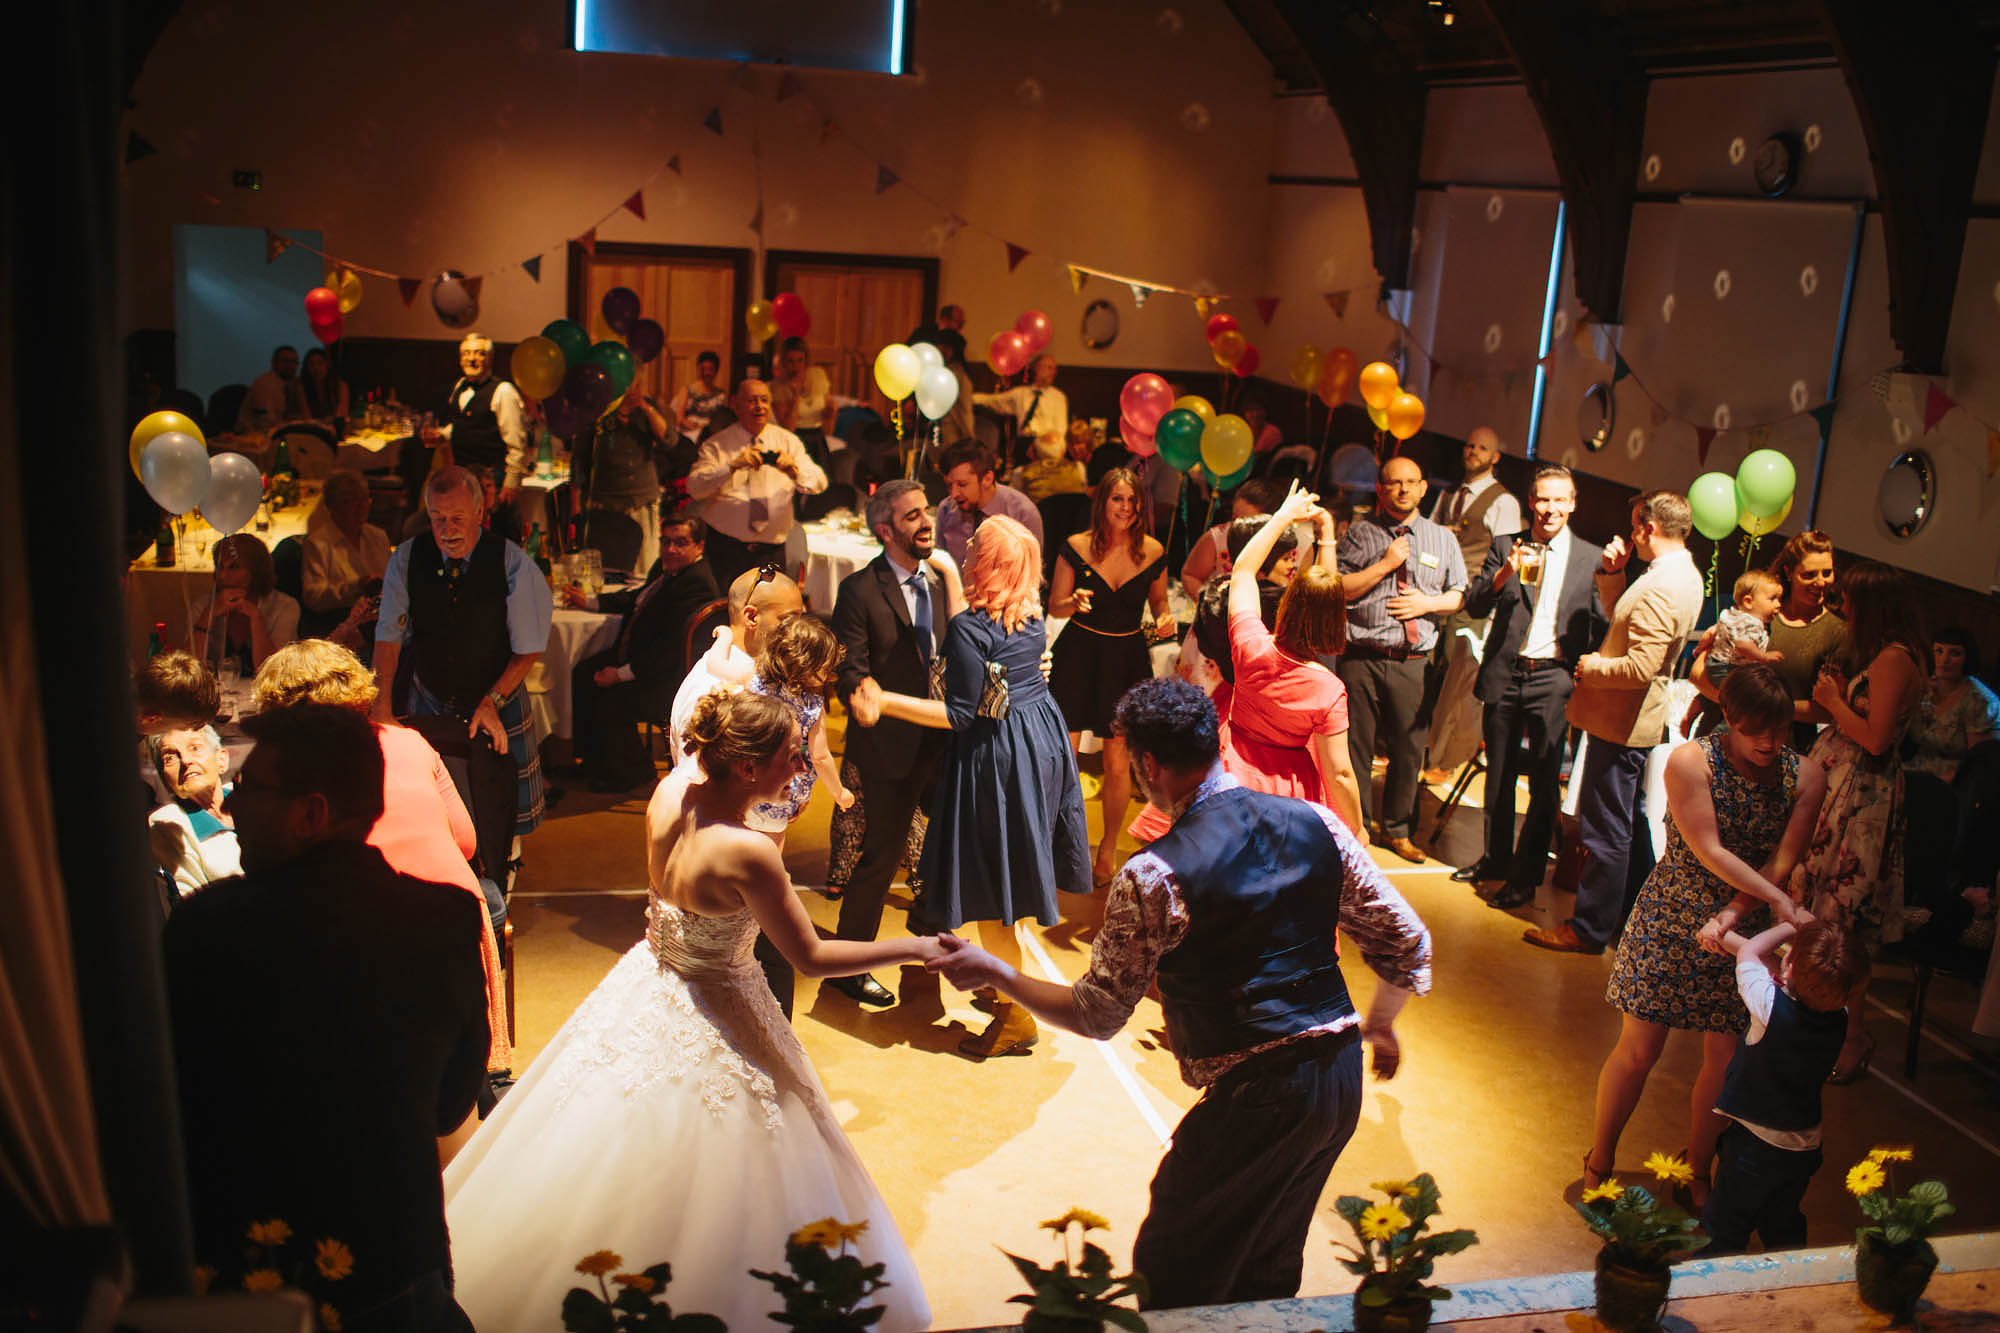 Leeds Yorkshire Wedding Photographer Swing Dance Bride Party